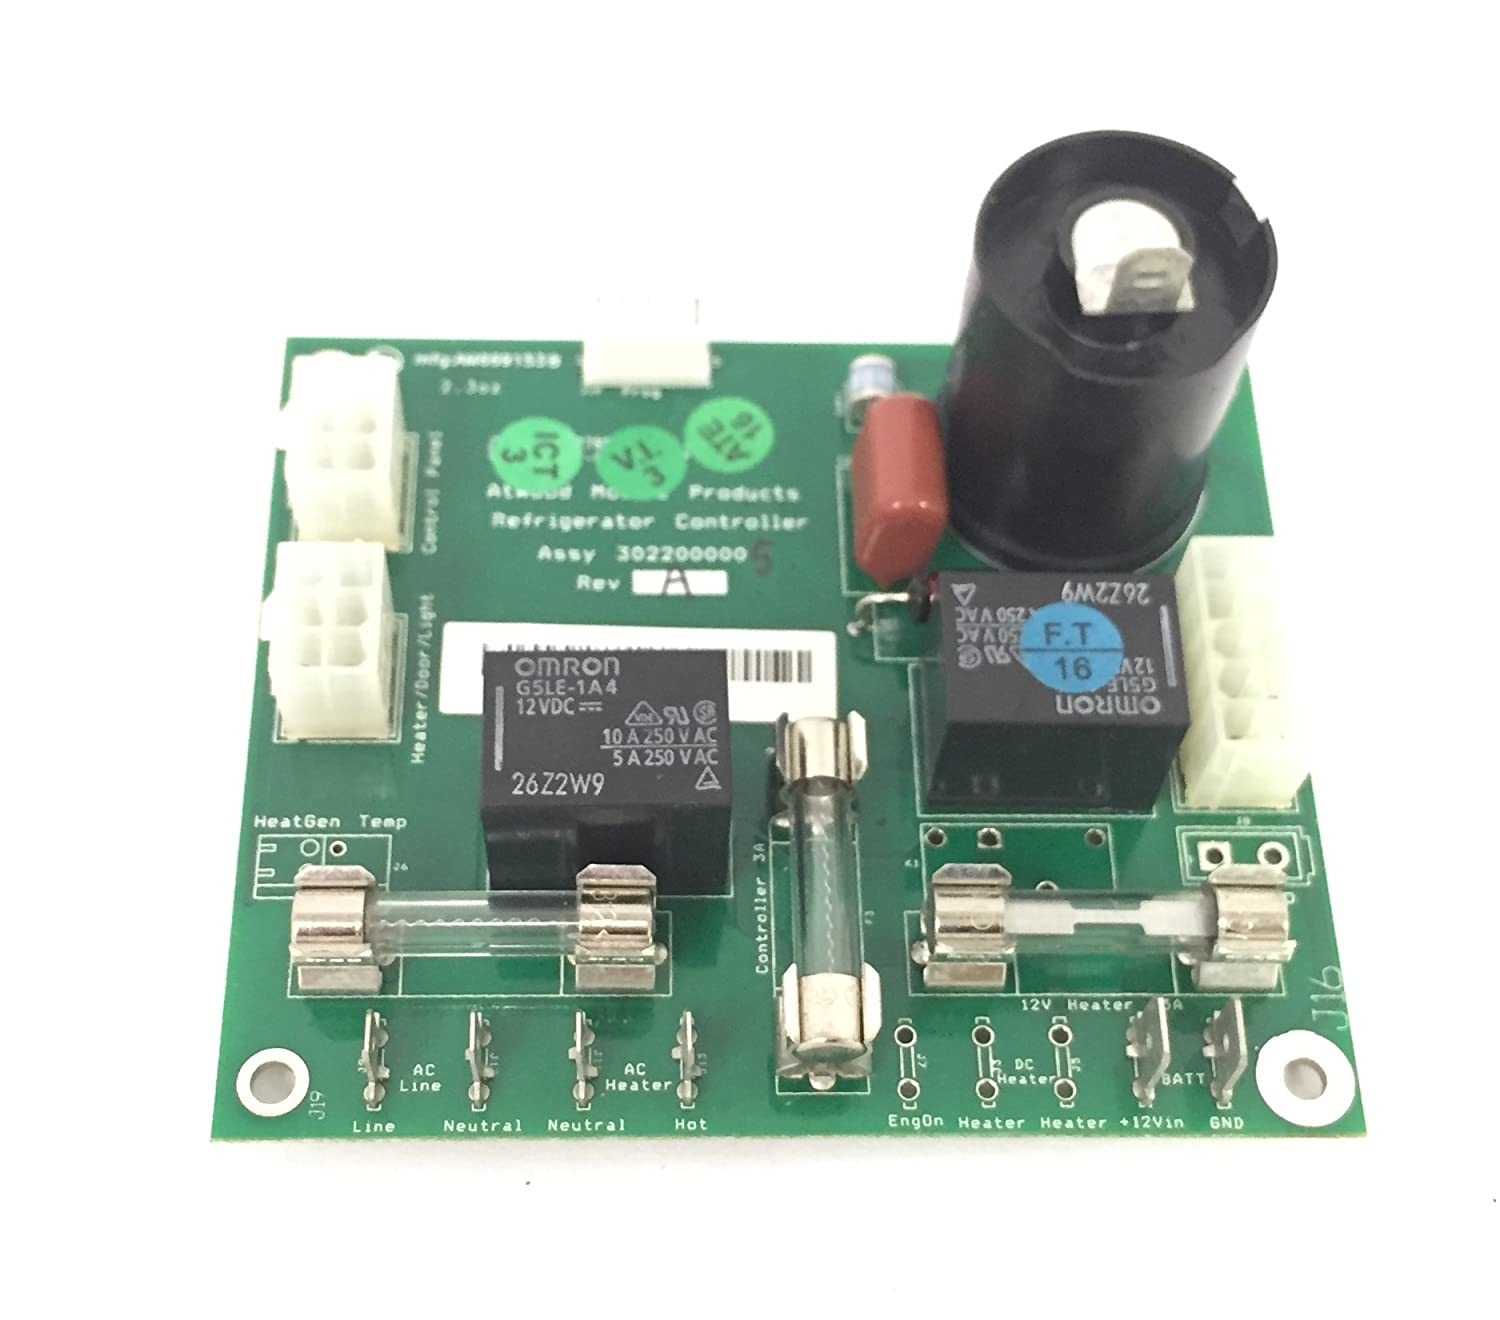 Board Power Pcb Refrigera Industrial Scientific Switch Pcbpcb Circuit Boardpcb Manufacturing Product